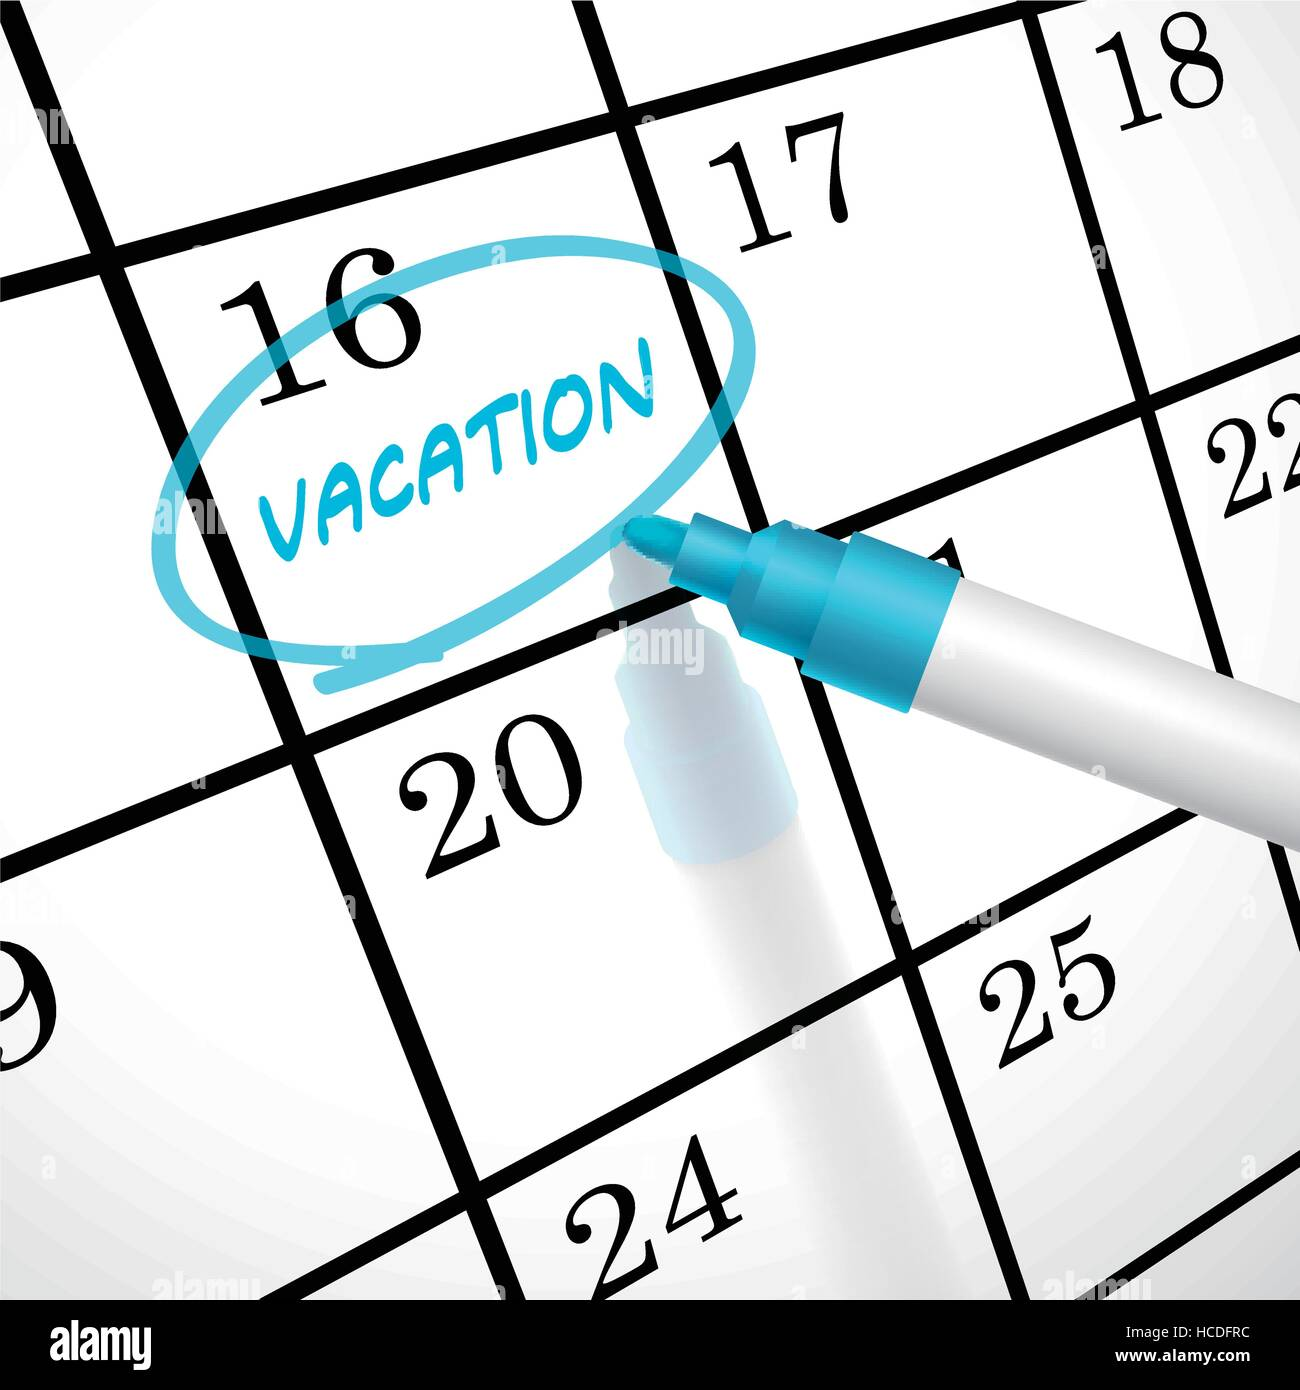 vacation word circle marked on a calendar by a blue pen stock vector